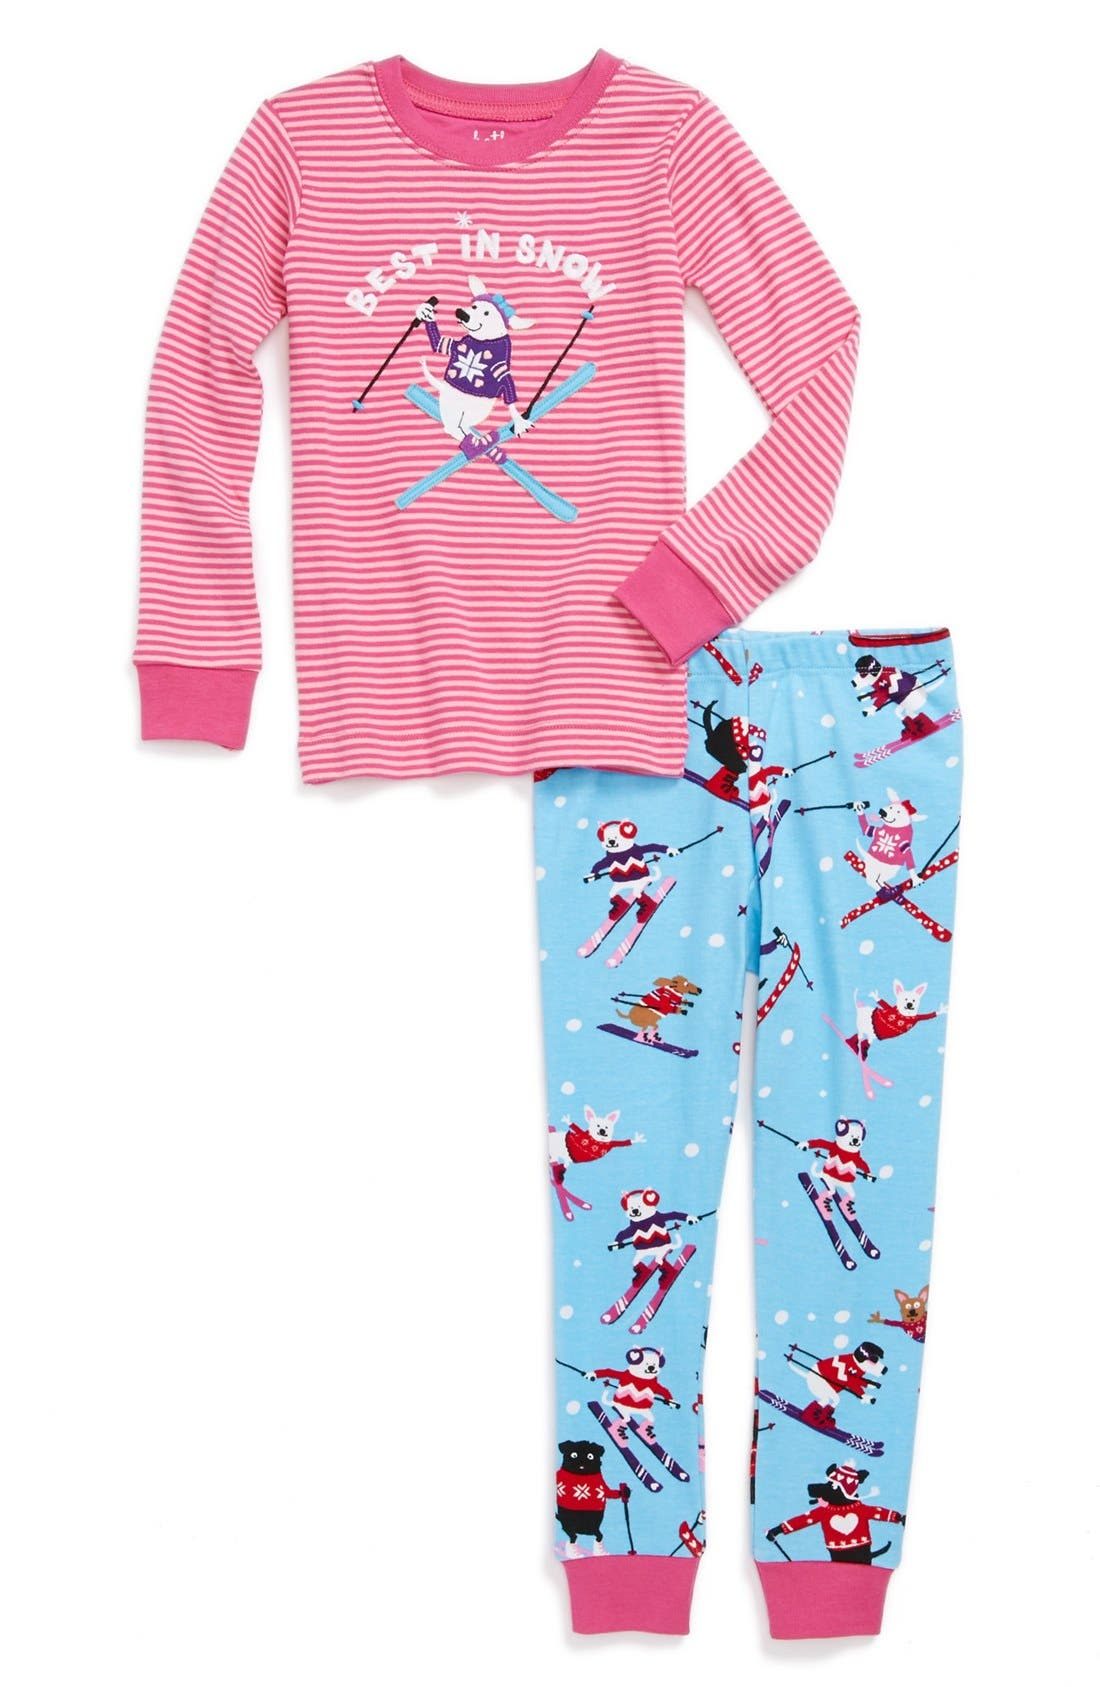 Main Image - Hatley 'Best in Snow' Two-Piece Fitted Pajamas (Toddler Girls)